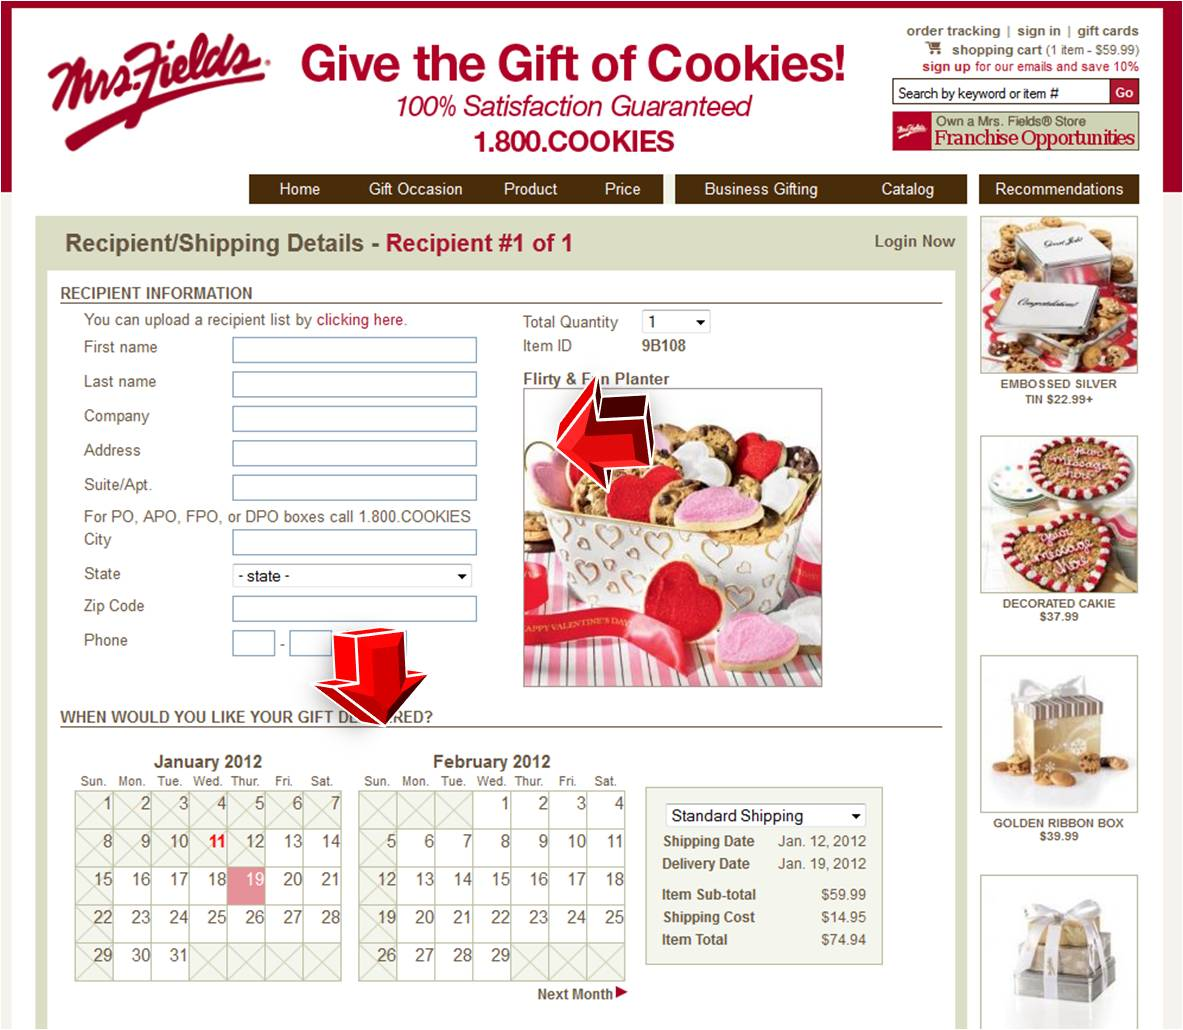 Ms fields coupons codes